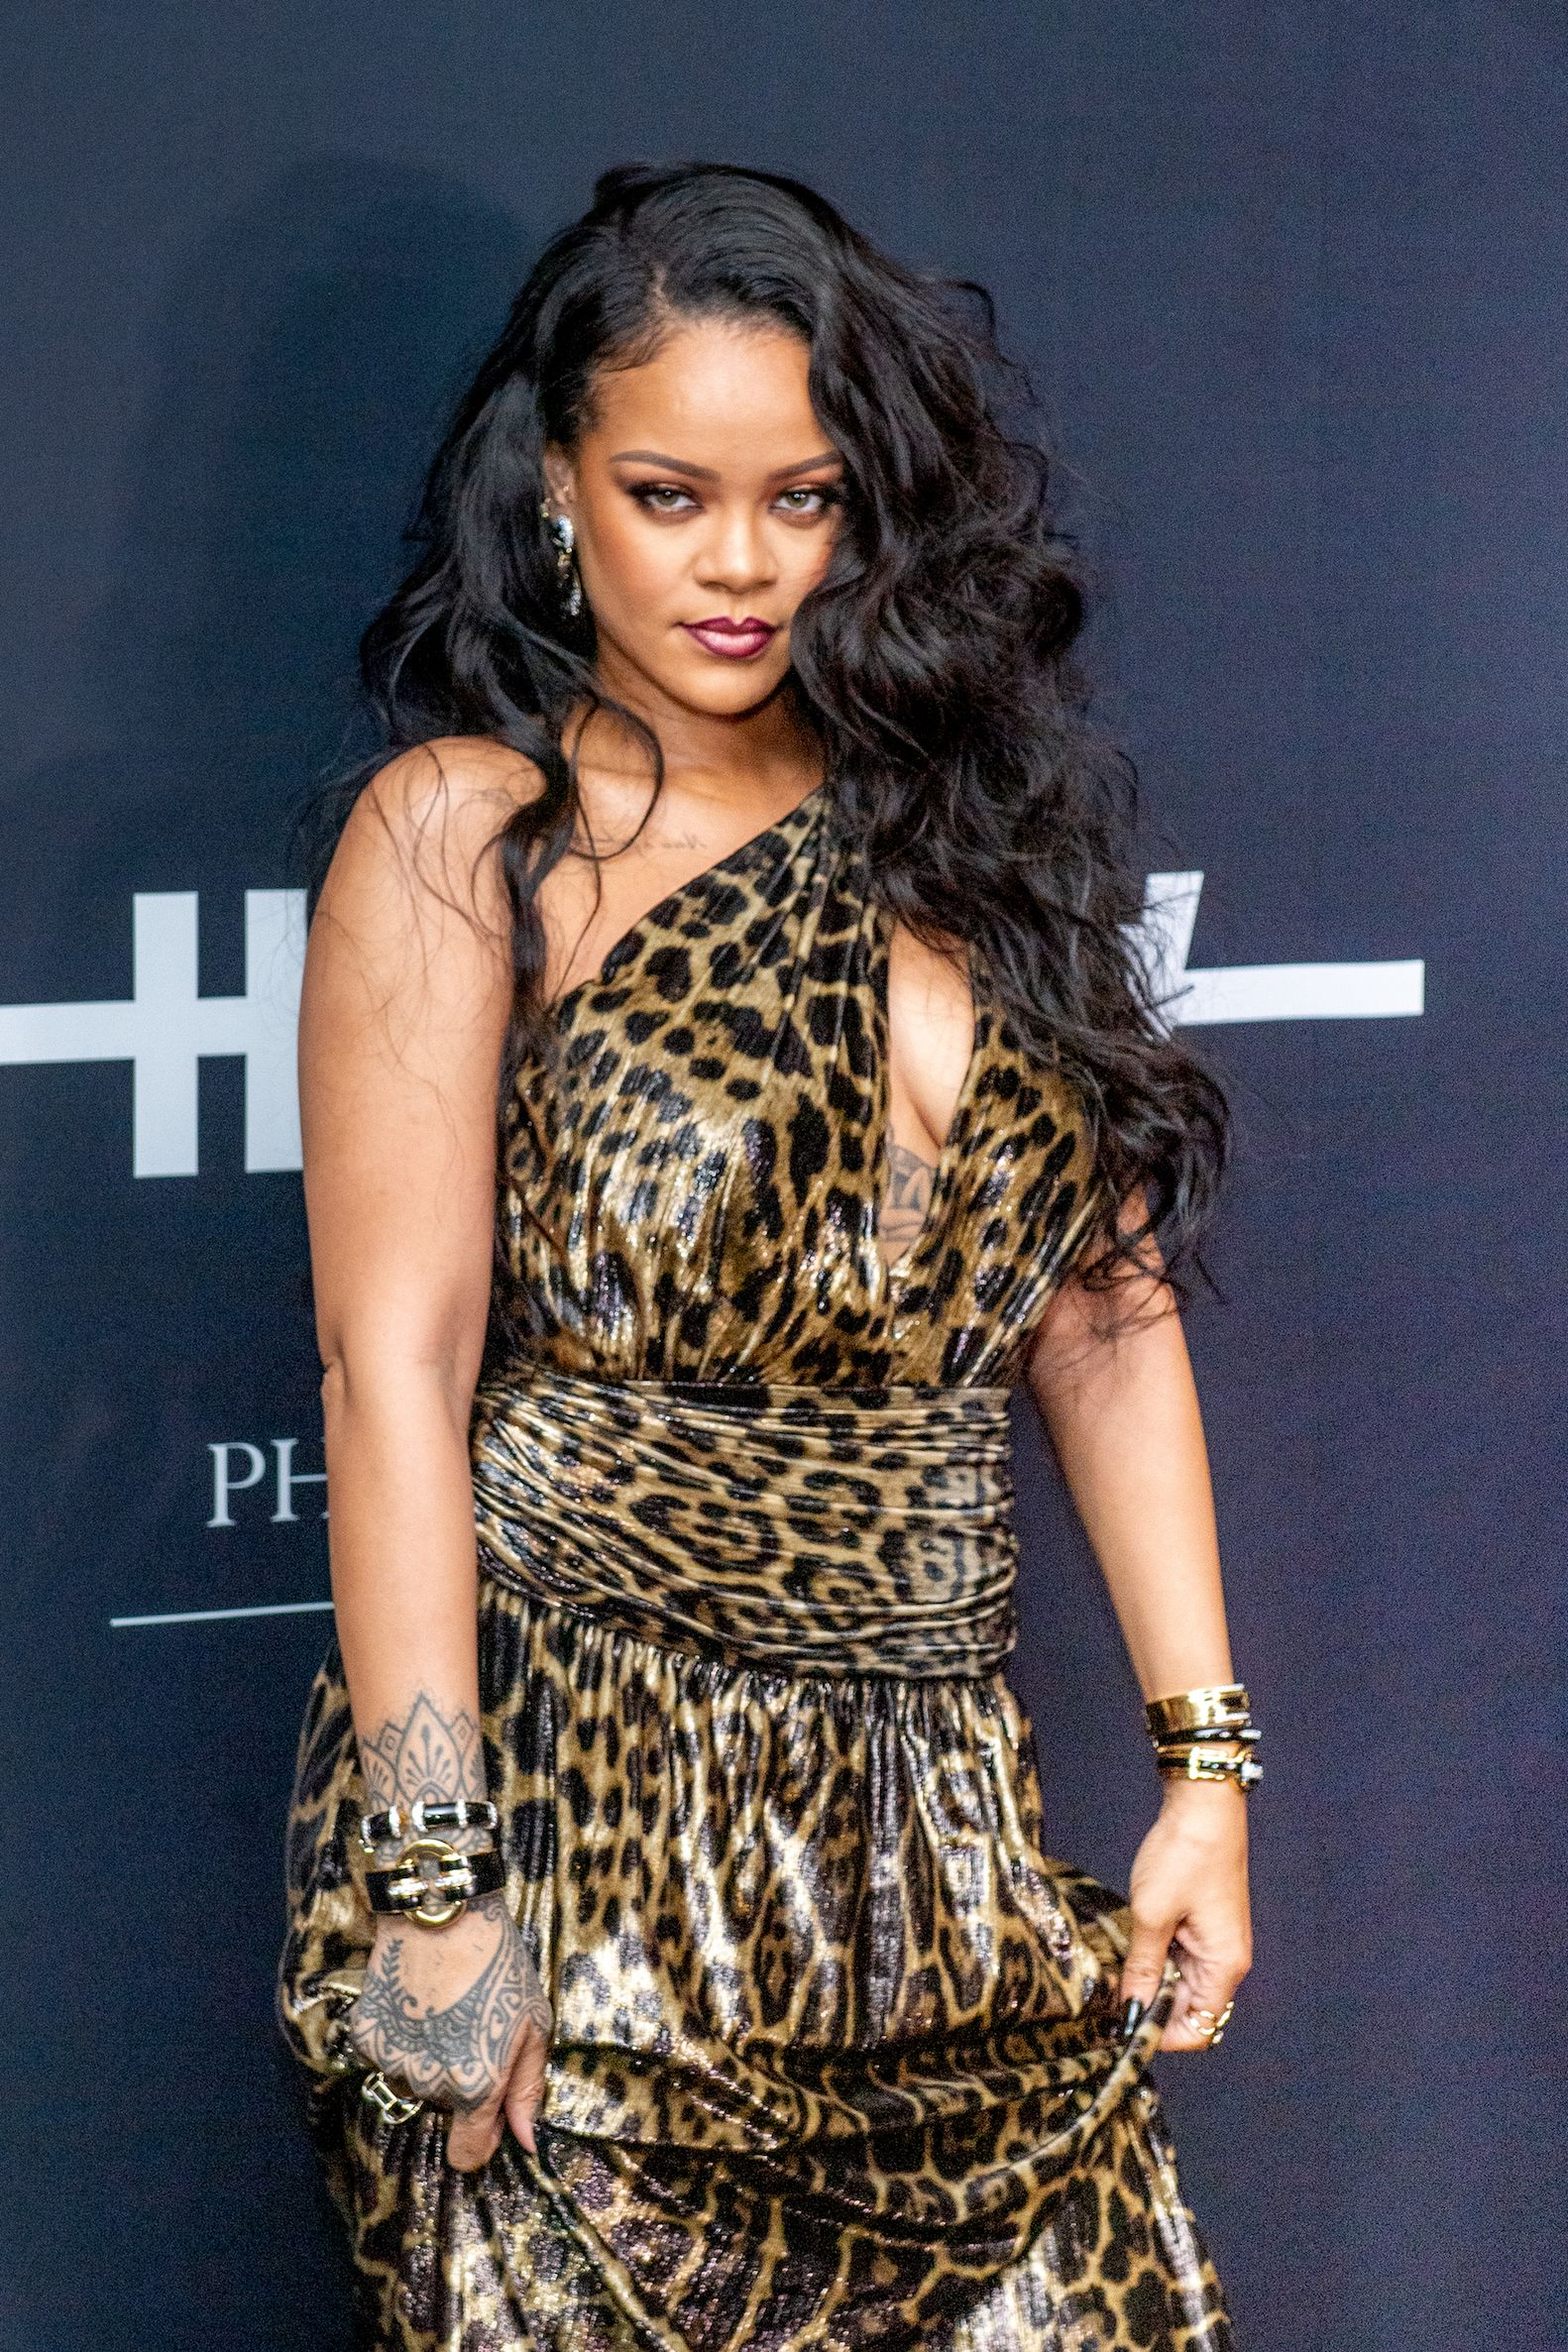 Rihanna Says She's Taking Supplements And Preparing For Motherhood